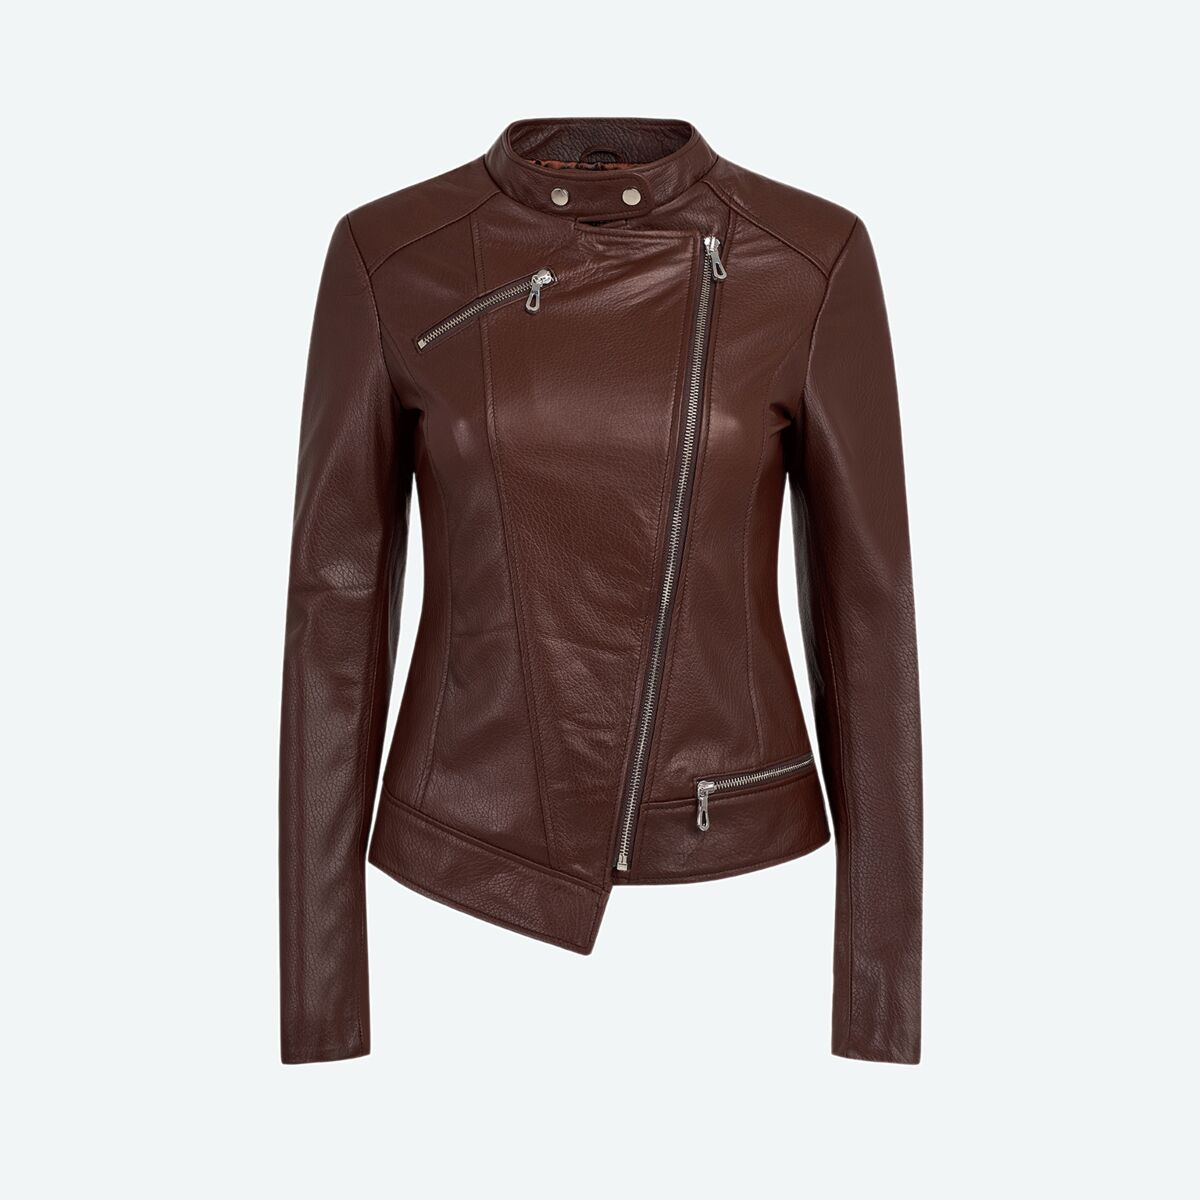 Women's Asymmetric Leather Jacket - Brown